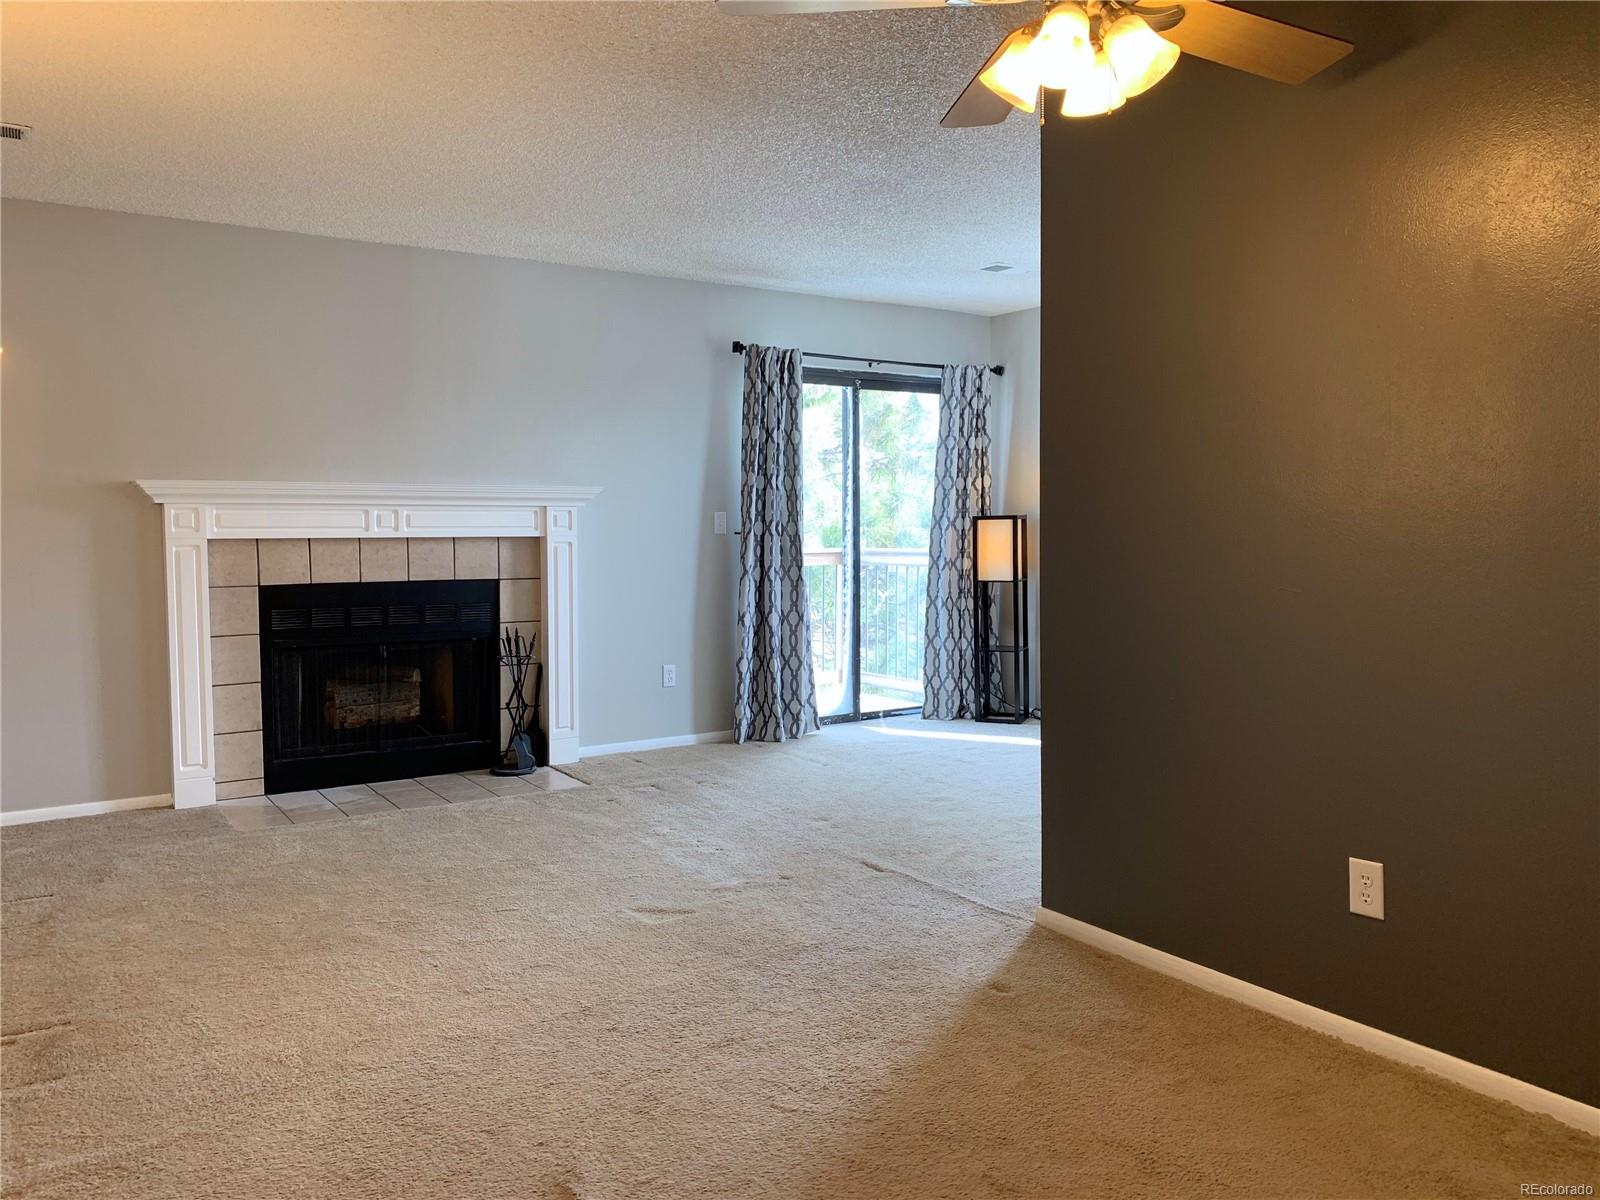 View of Living Room from Foyer